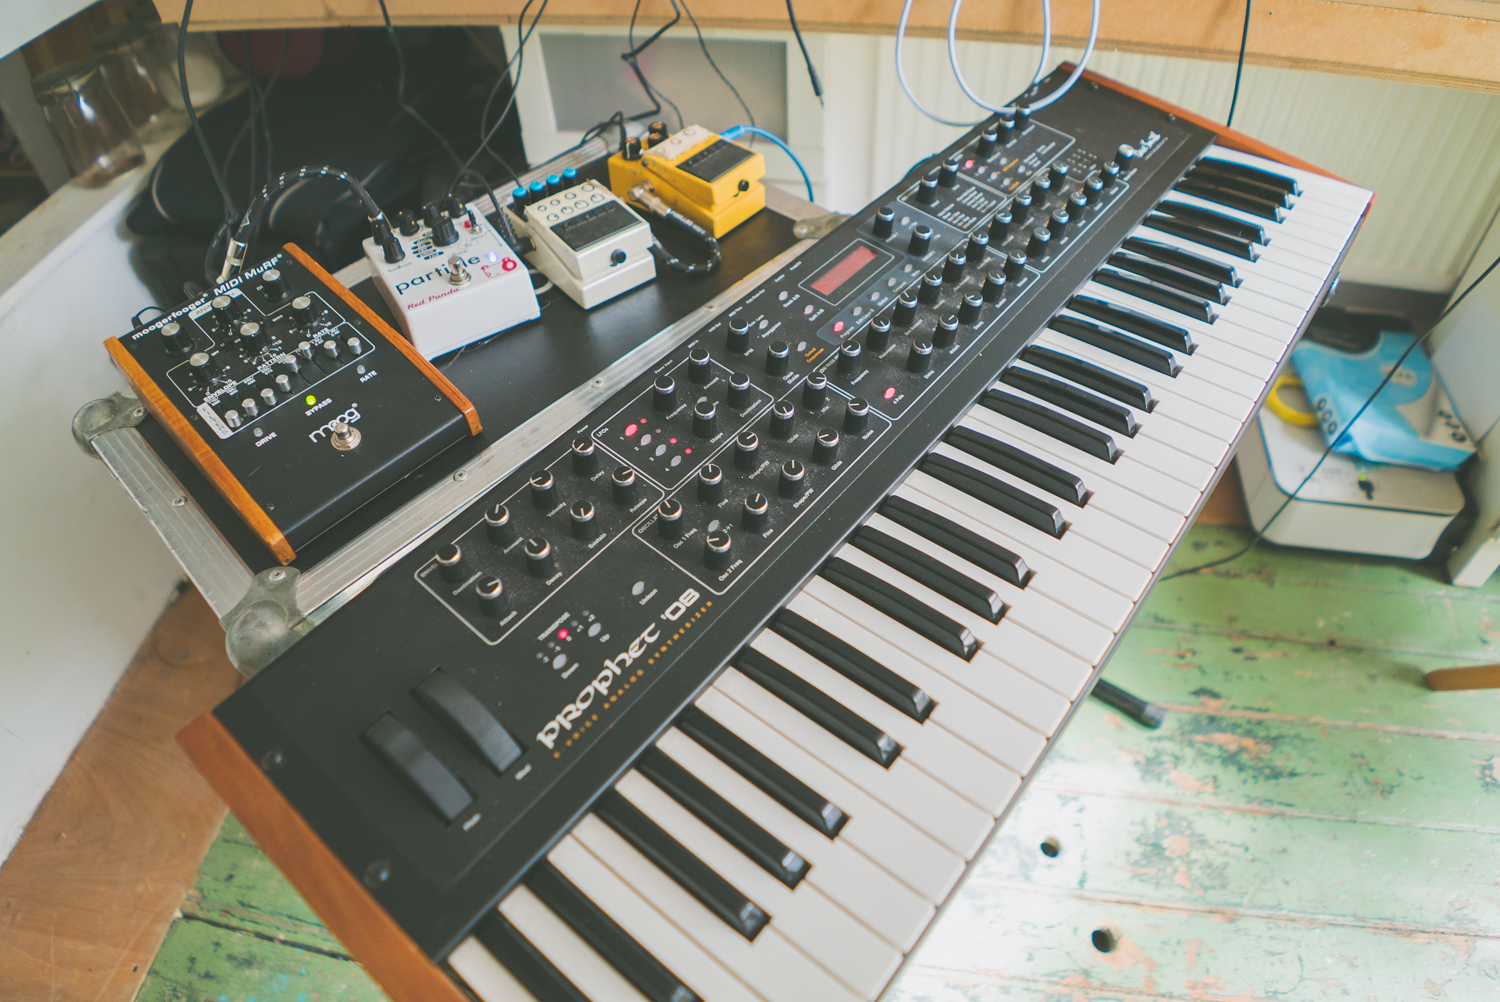 rival-consoles-by-pawel-ptak-06